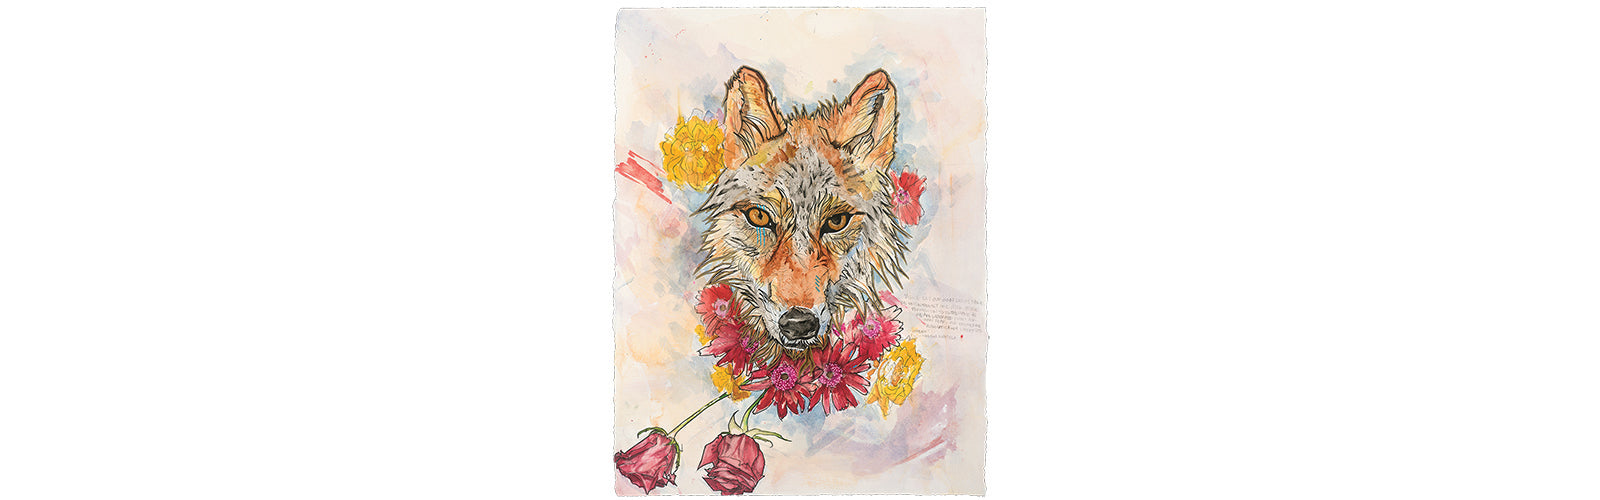 """Amor fati"" is Latin for ""love of one's fate."" This piece is a meditation on acceptance of how life unfolds. The roses are beautiful, but temporary. Do we only love them in their bloom? Red wolves are on the verge of extinction...seen through ""amor fati,"""